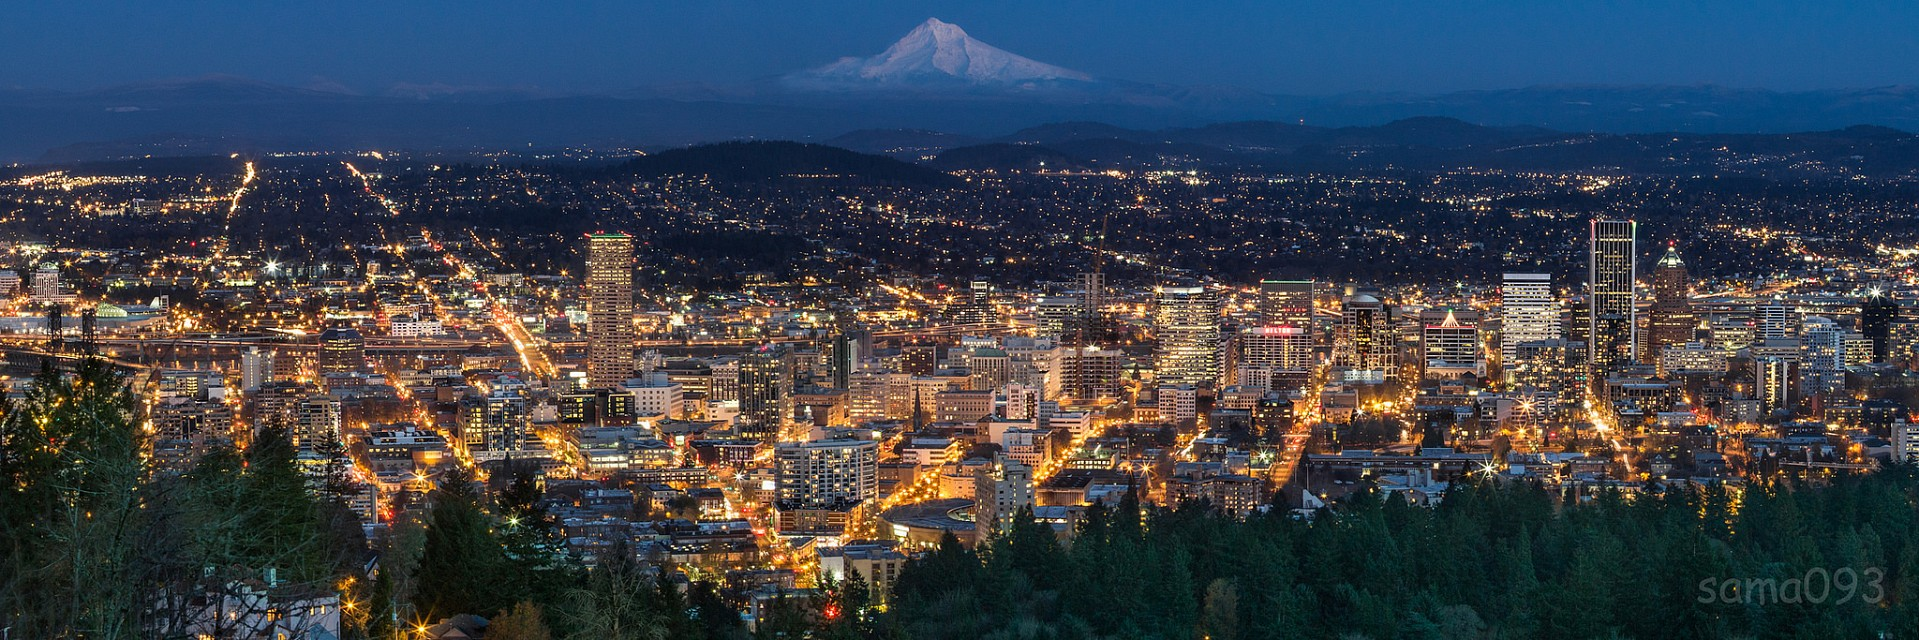 Portland as seen from Pittock Mansion - Pittock Mansion